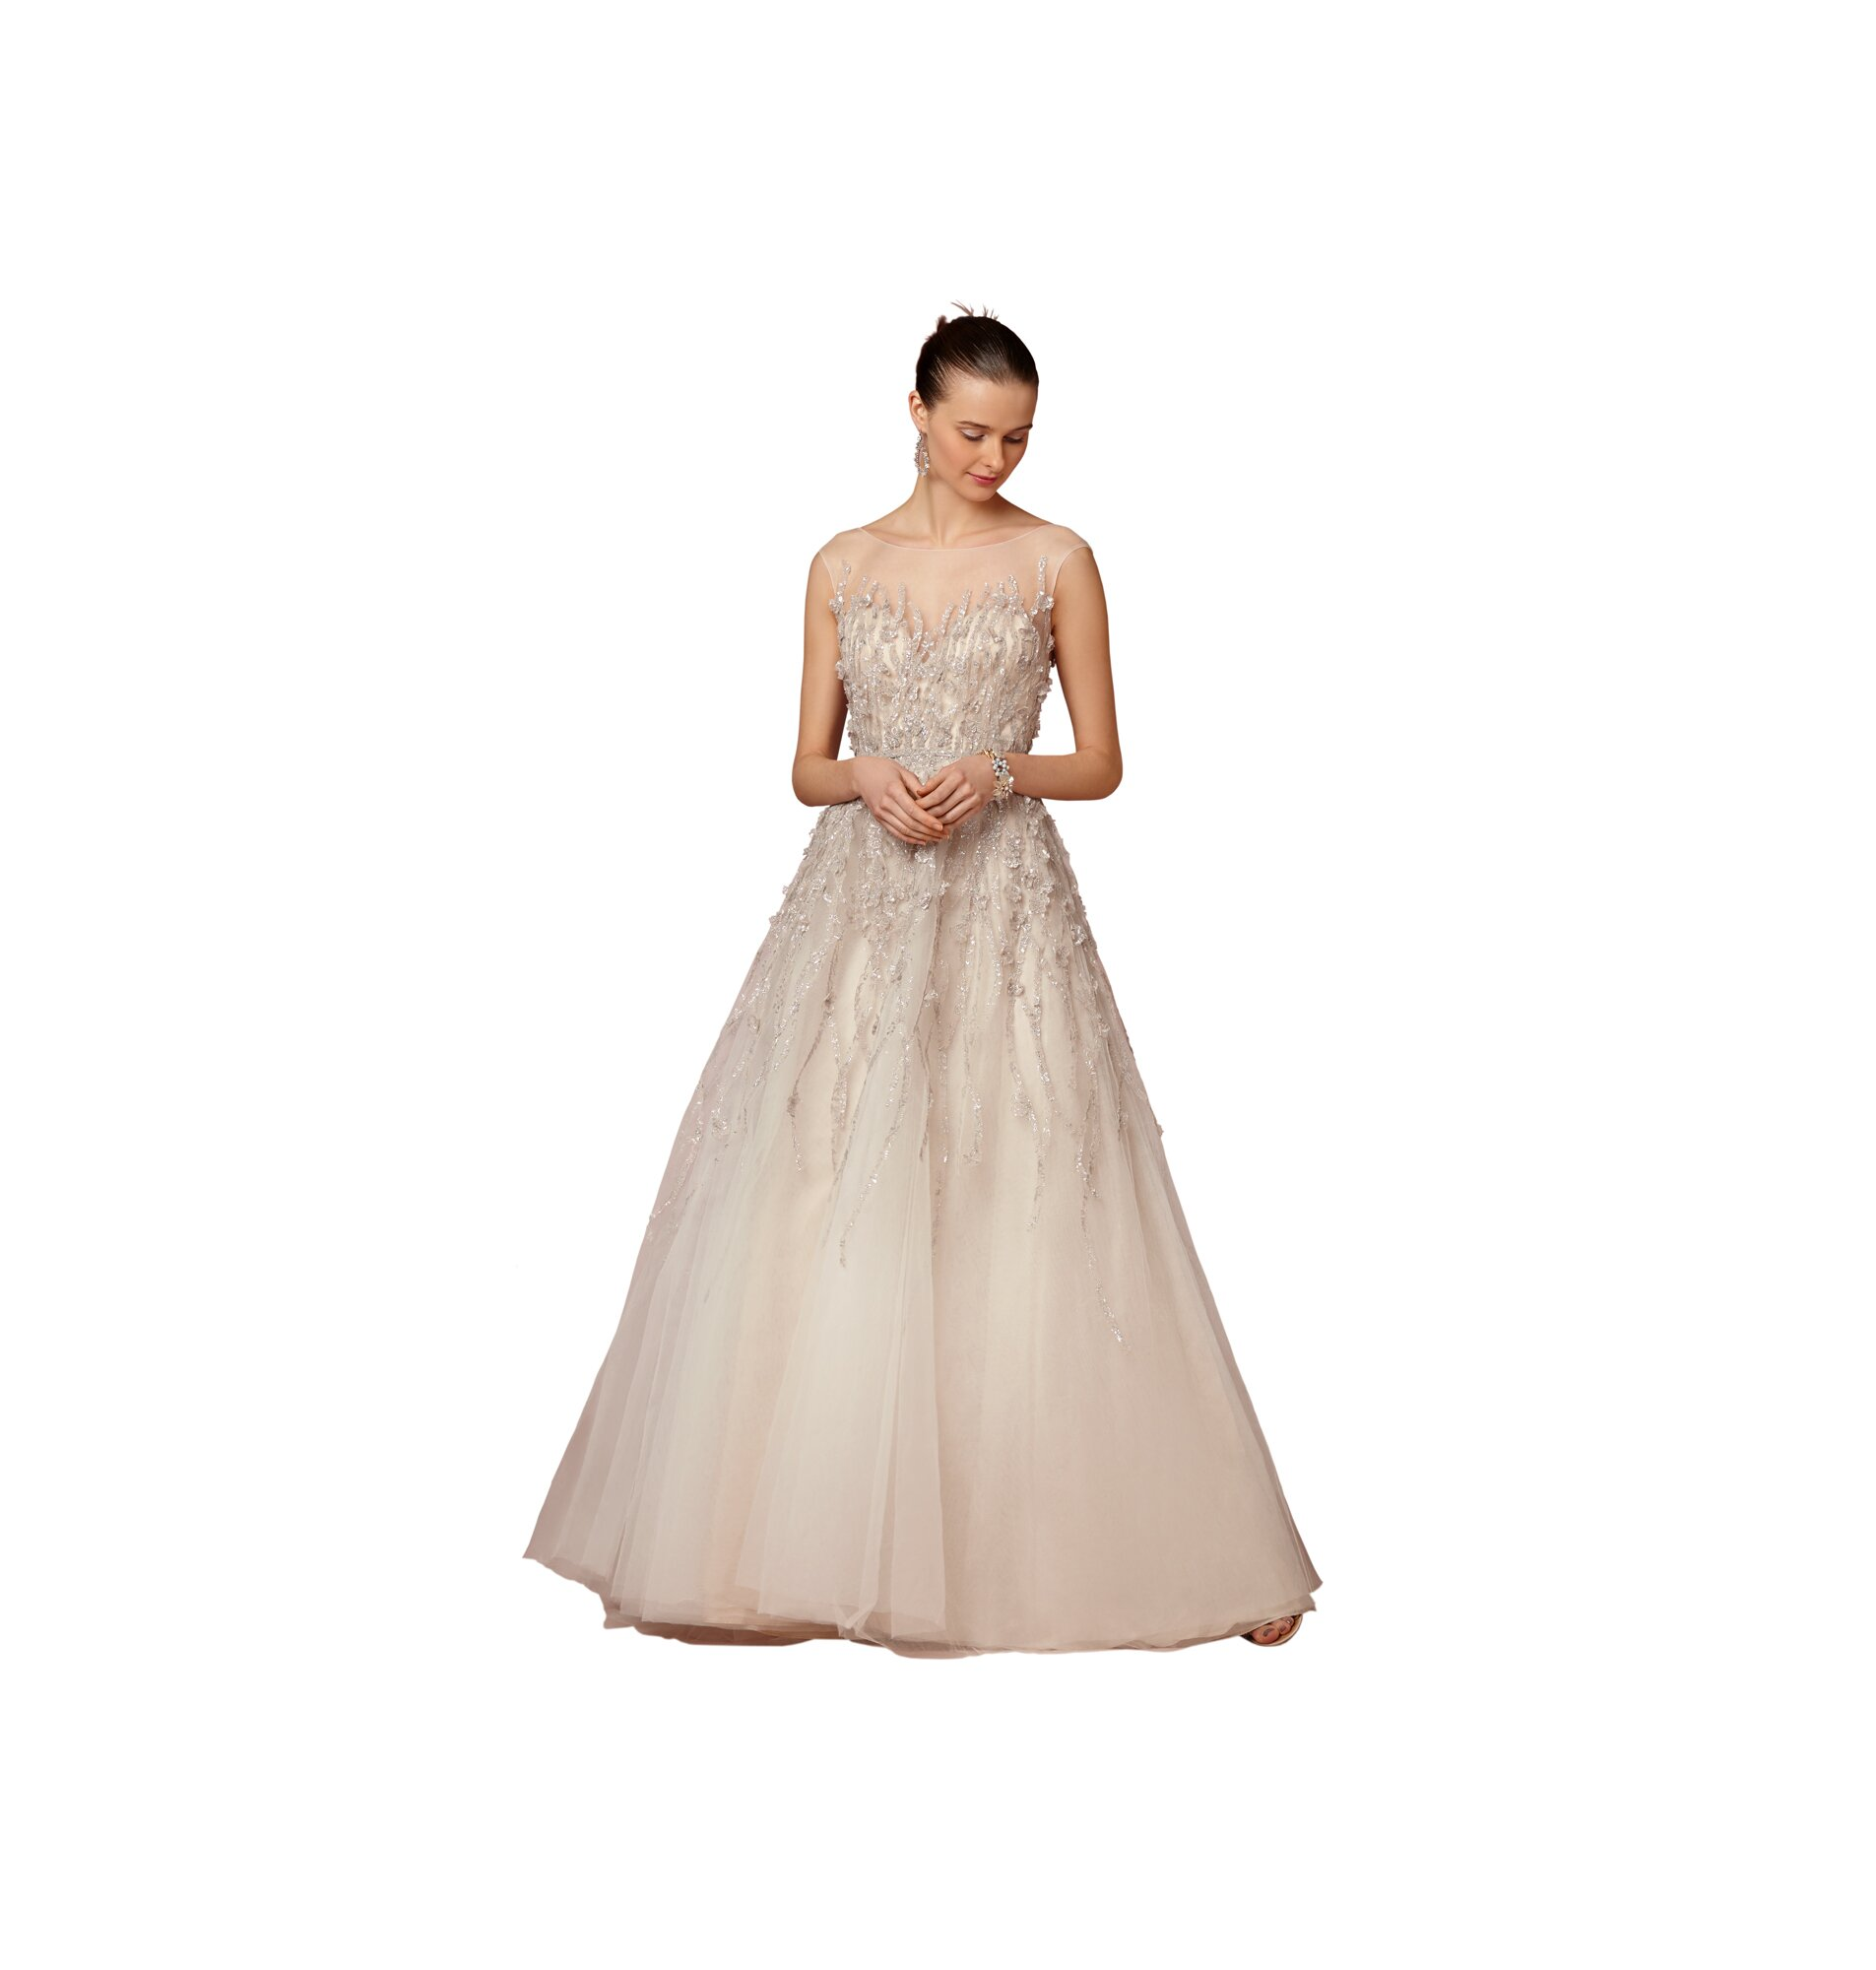 17c5d96315c1 11 Affordable Wedding Dresses That Only Look Expensive